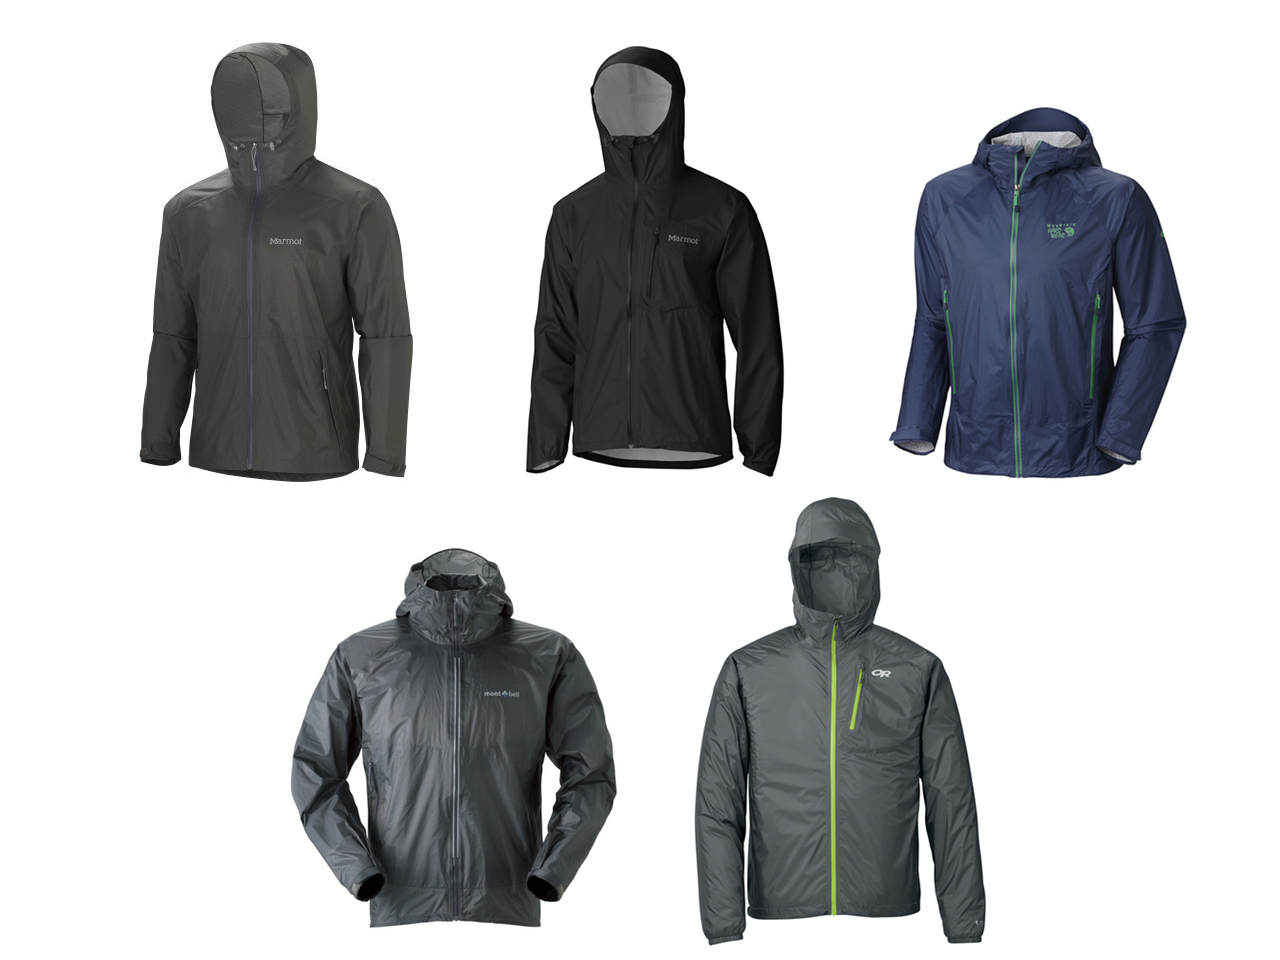 5 of the best lightweight packable rain jackets snarky nomad lightweight packable rain jackets gumiabroncs Images